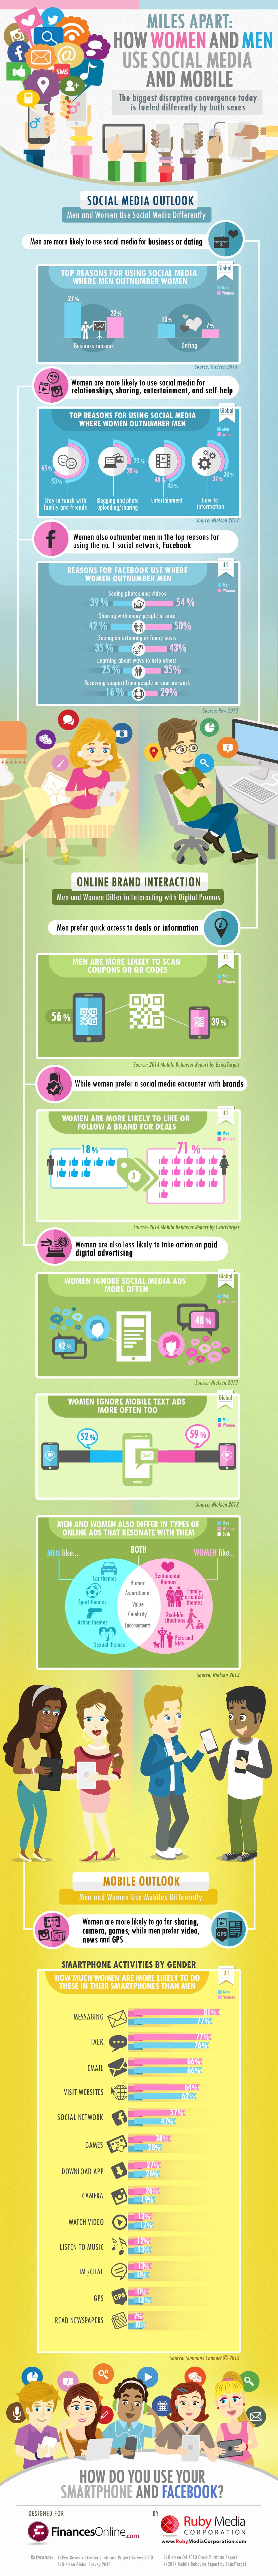 How Your Gender Affects The Way You Use Facebook: The Impact of Social Media on Society Analyzed by FinancesOnline.com